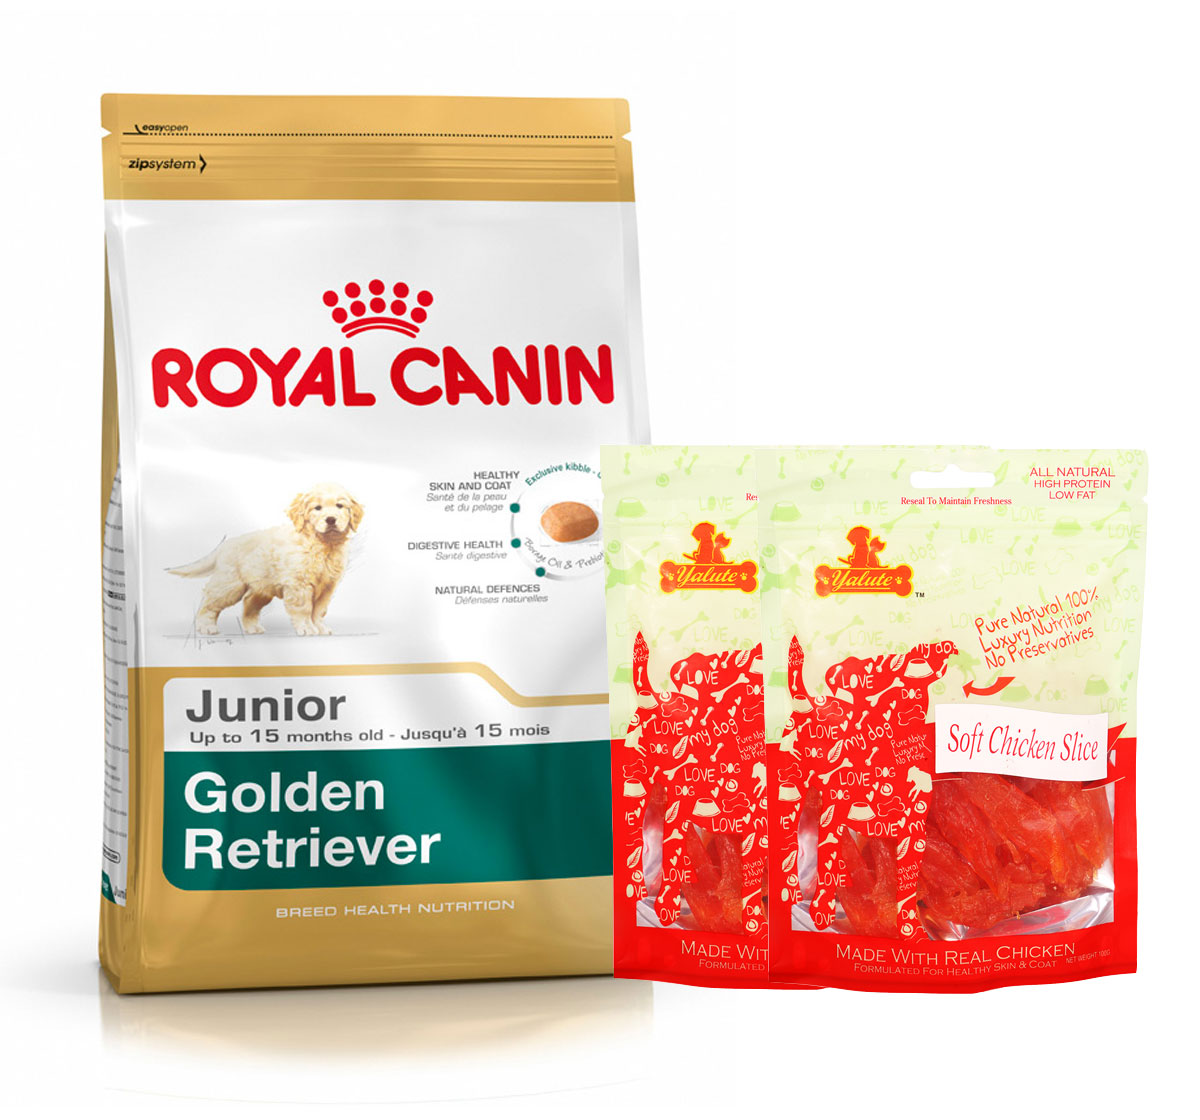 Royal Canin Golden Retriever Junior - 3 Kg  With Chicken Slices